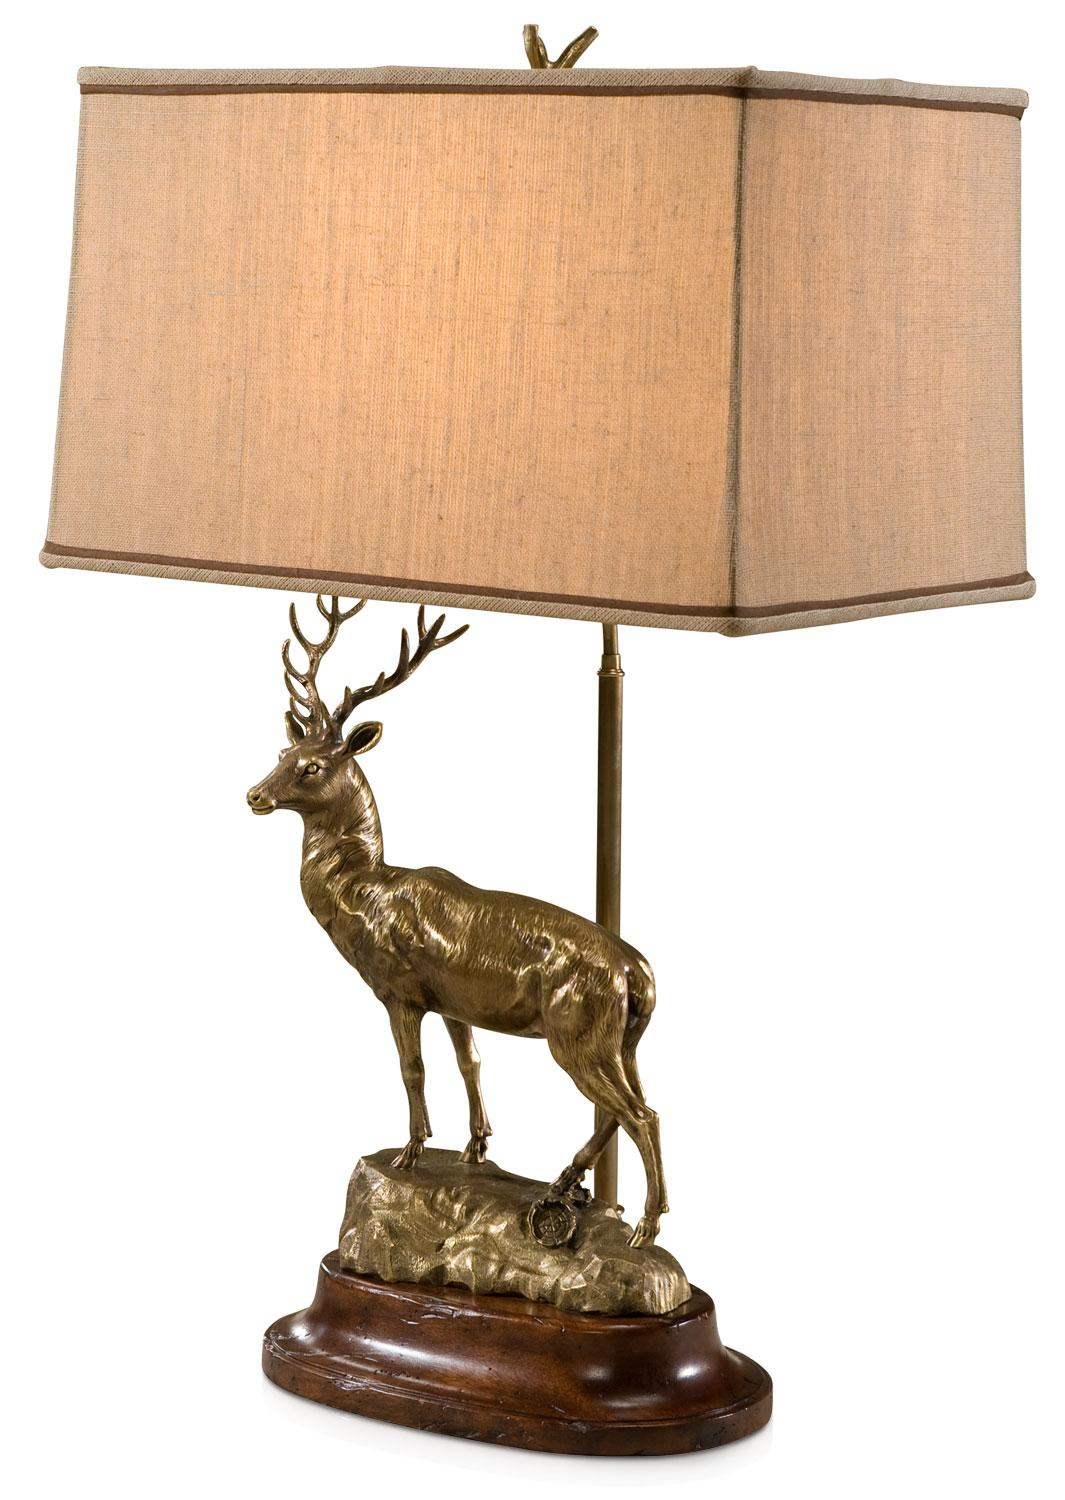 Brass model of a stag table lamp, Table Lamps from Brights ...